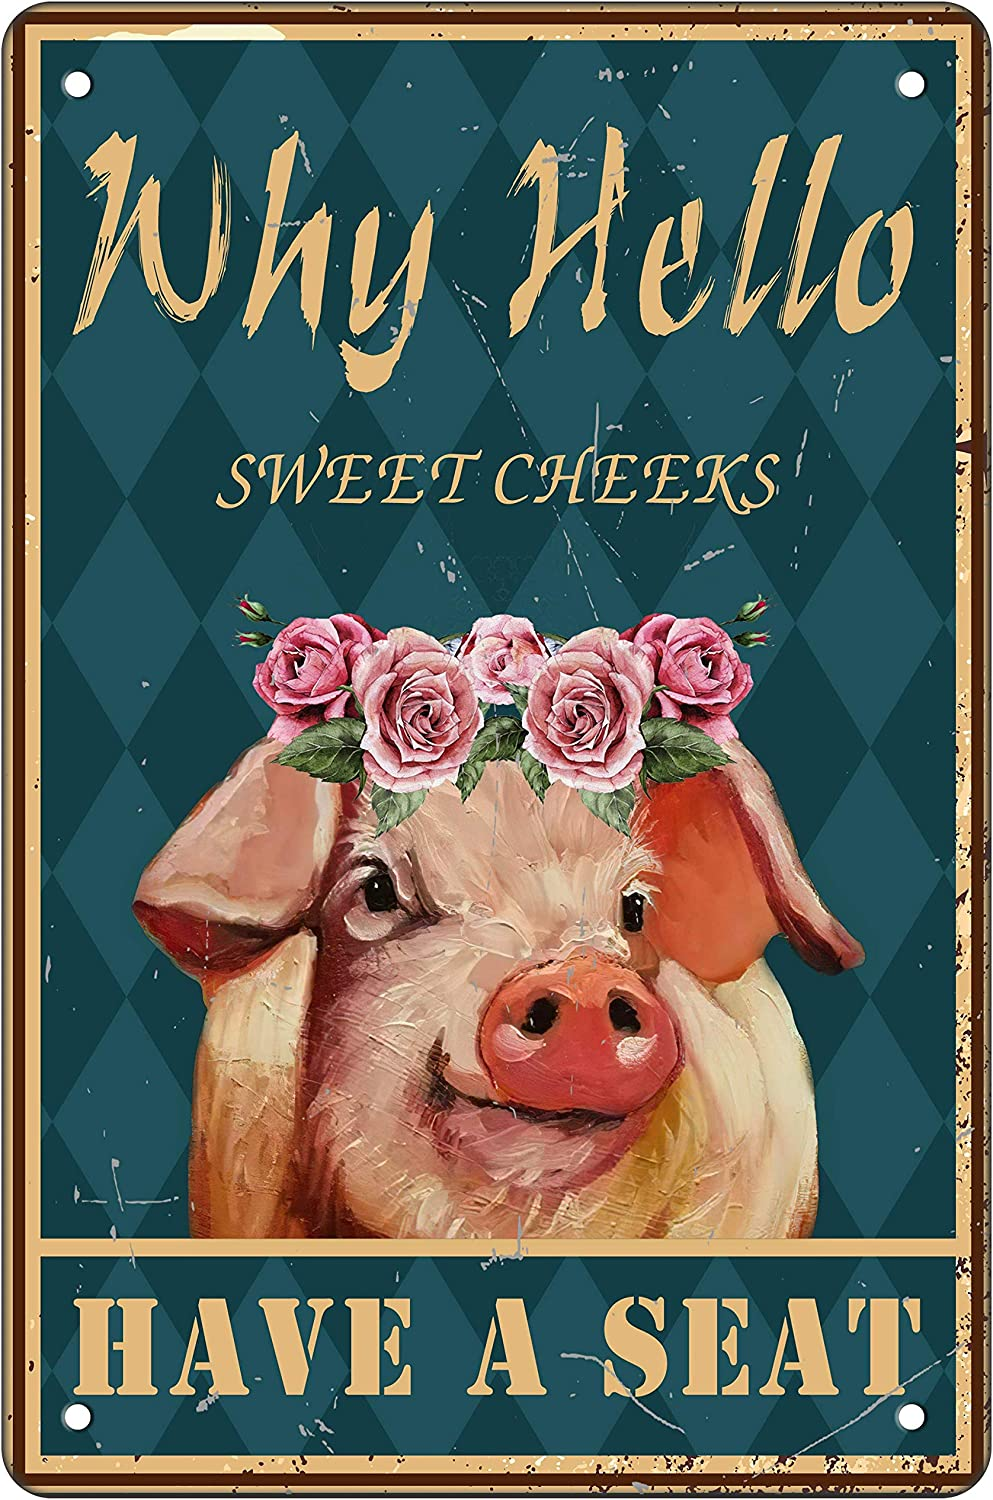 Funny Bathroom Metal Tin Sign Wall Decor Vintage Hello Sweet Cheeks PigTin Sign for Office Home Classroom Bathroom Decor Gifts Best Farmhouse Decor Gift Ideas for Friends 8x12 Inch